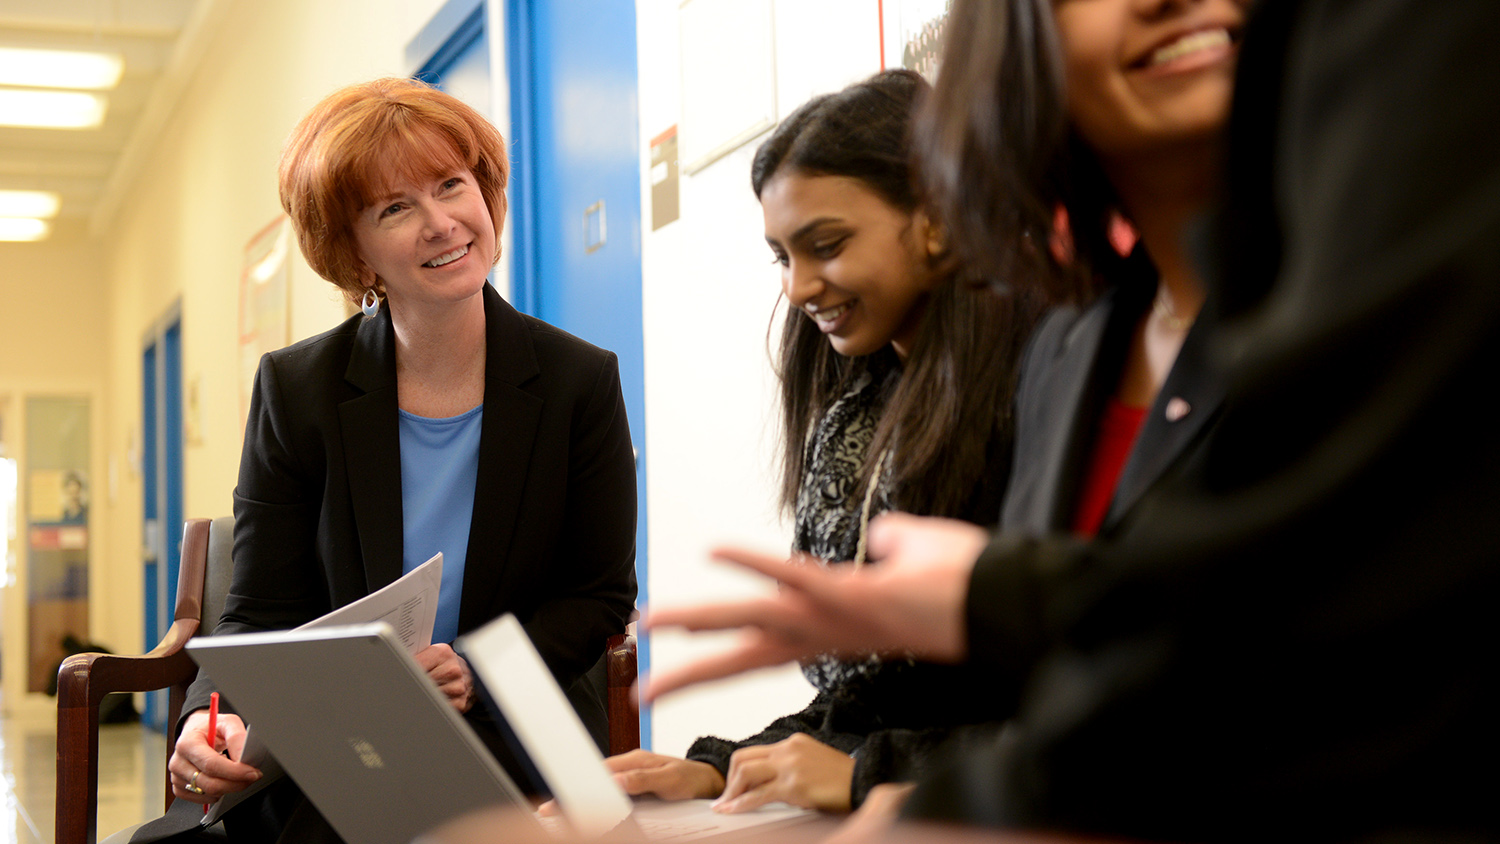 A faculty member chats with students